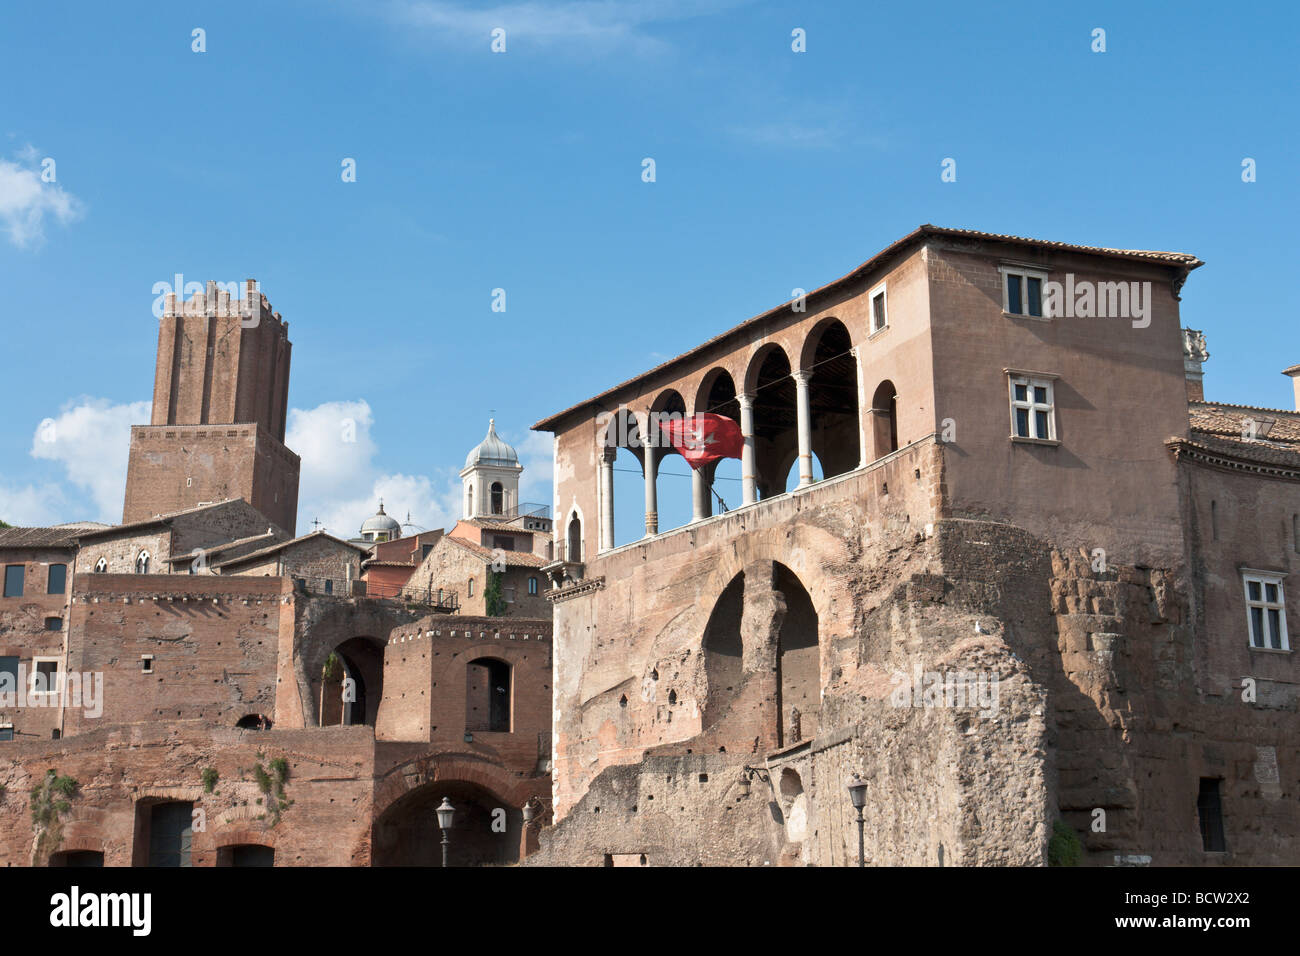 Loggia dei cavalieri di Rodi and Torre delle Milizie Stock Photo